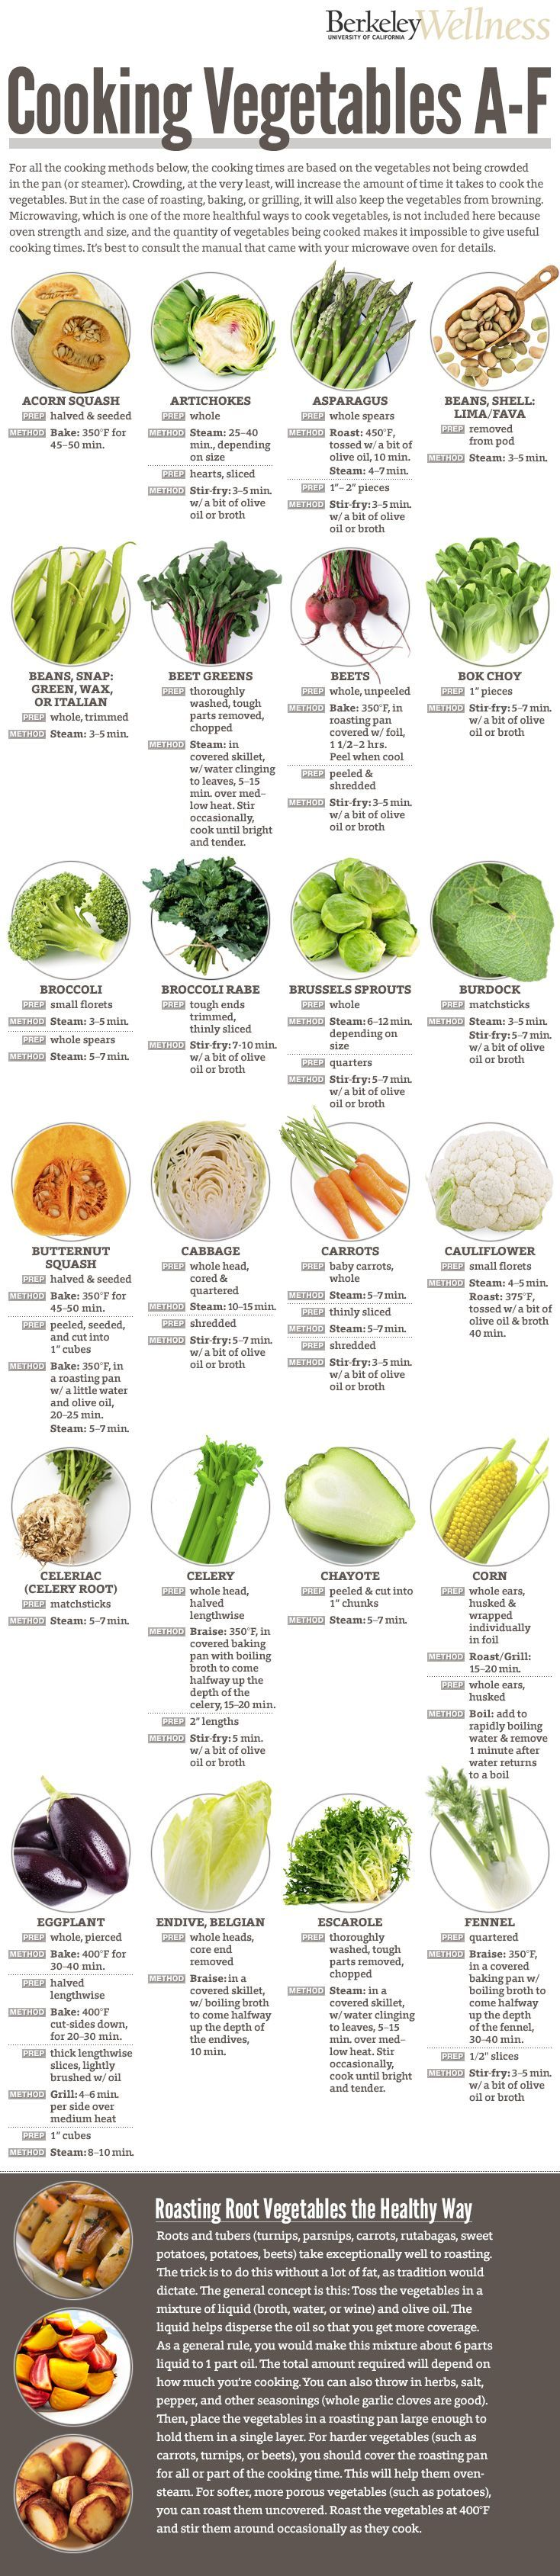 awesome PART I: How to Cook Vegetables the healthy way (from Acorn squash to Fennel) LBV